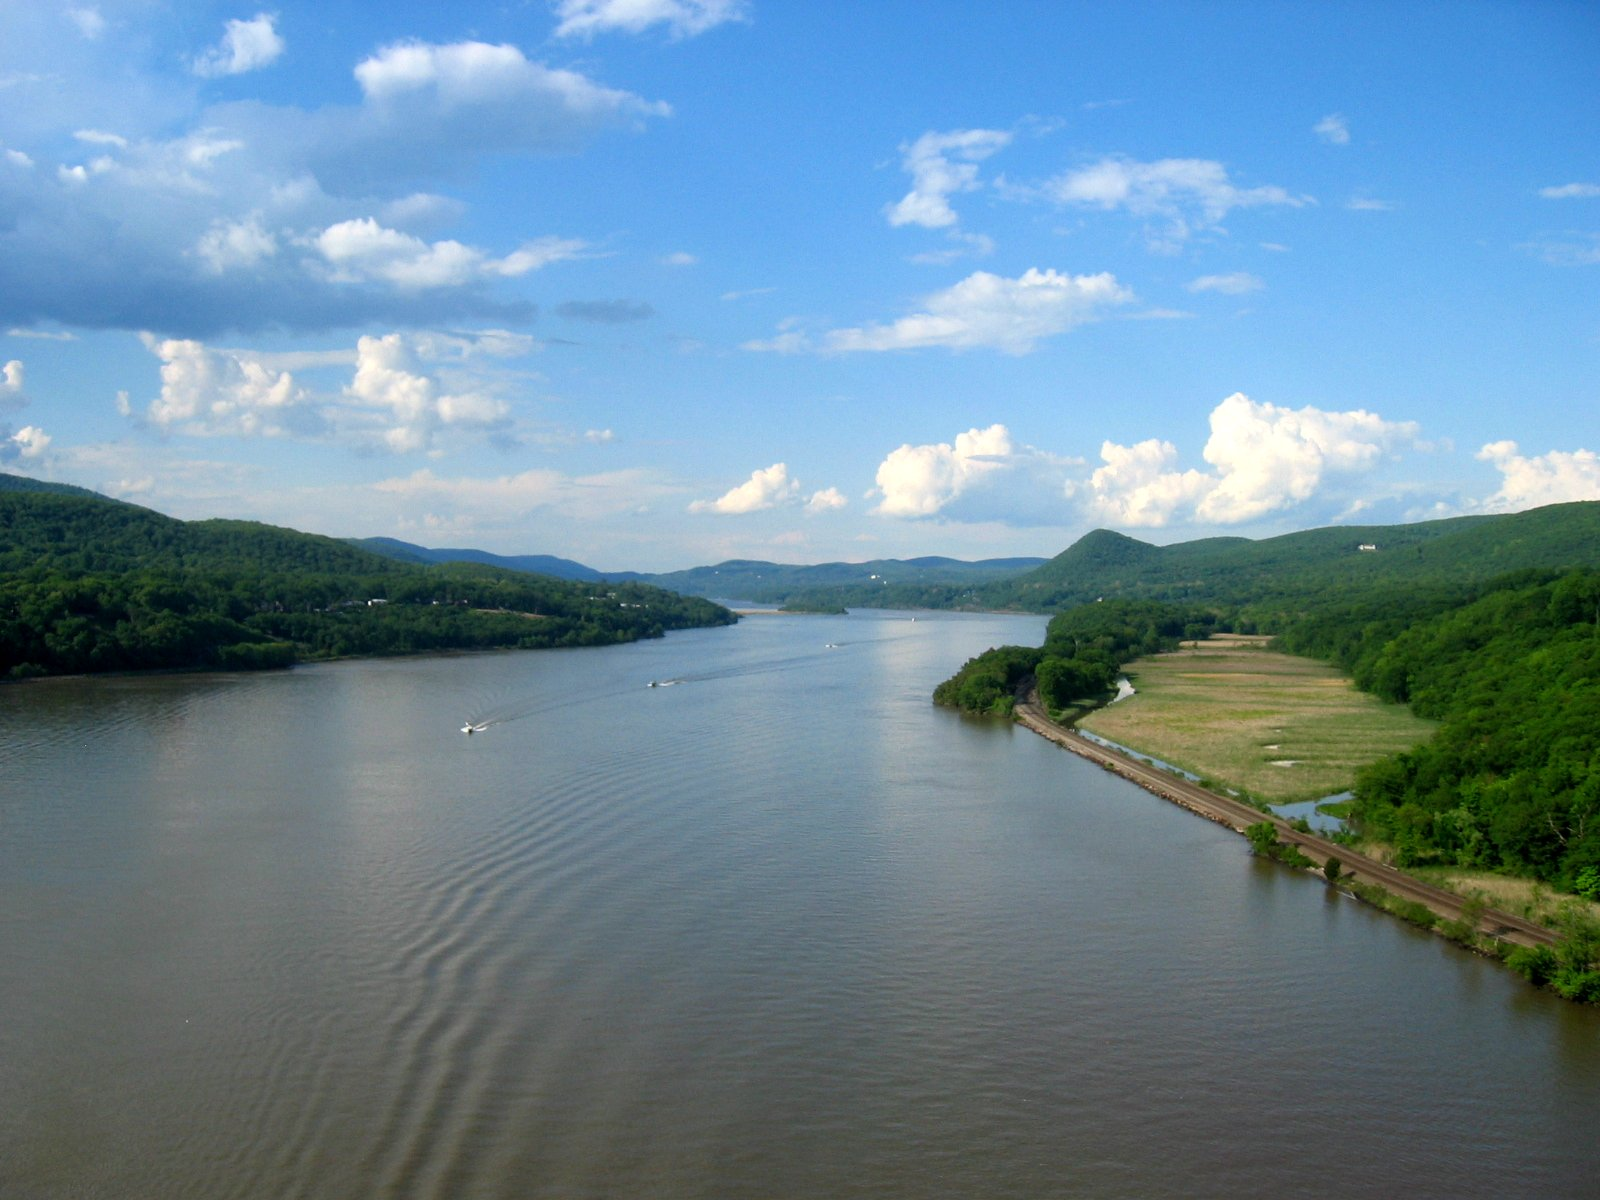 File:Hudson river from bear mountain bridge.jpg  Wikipedia, the free